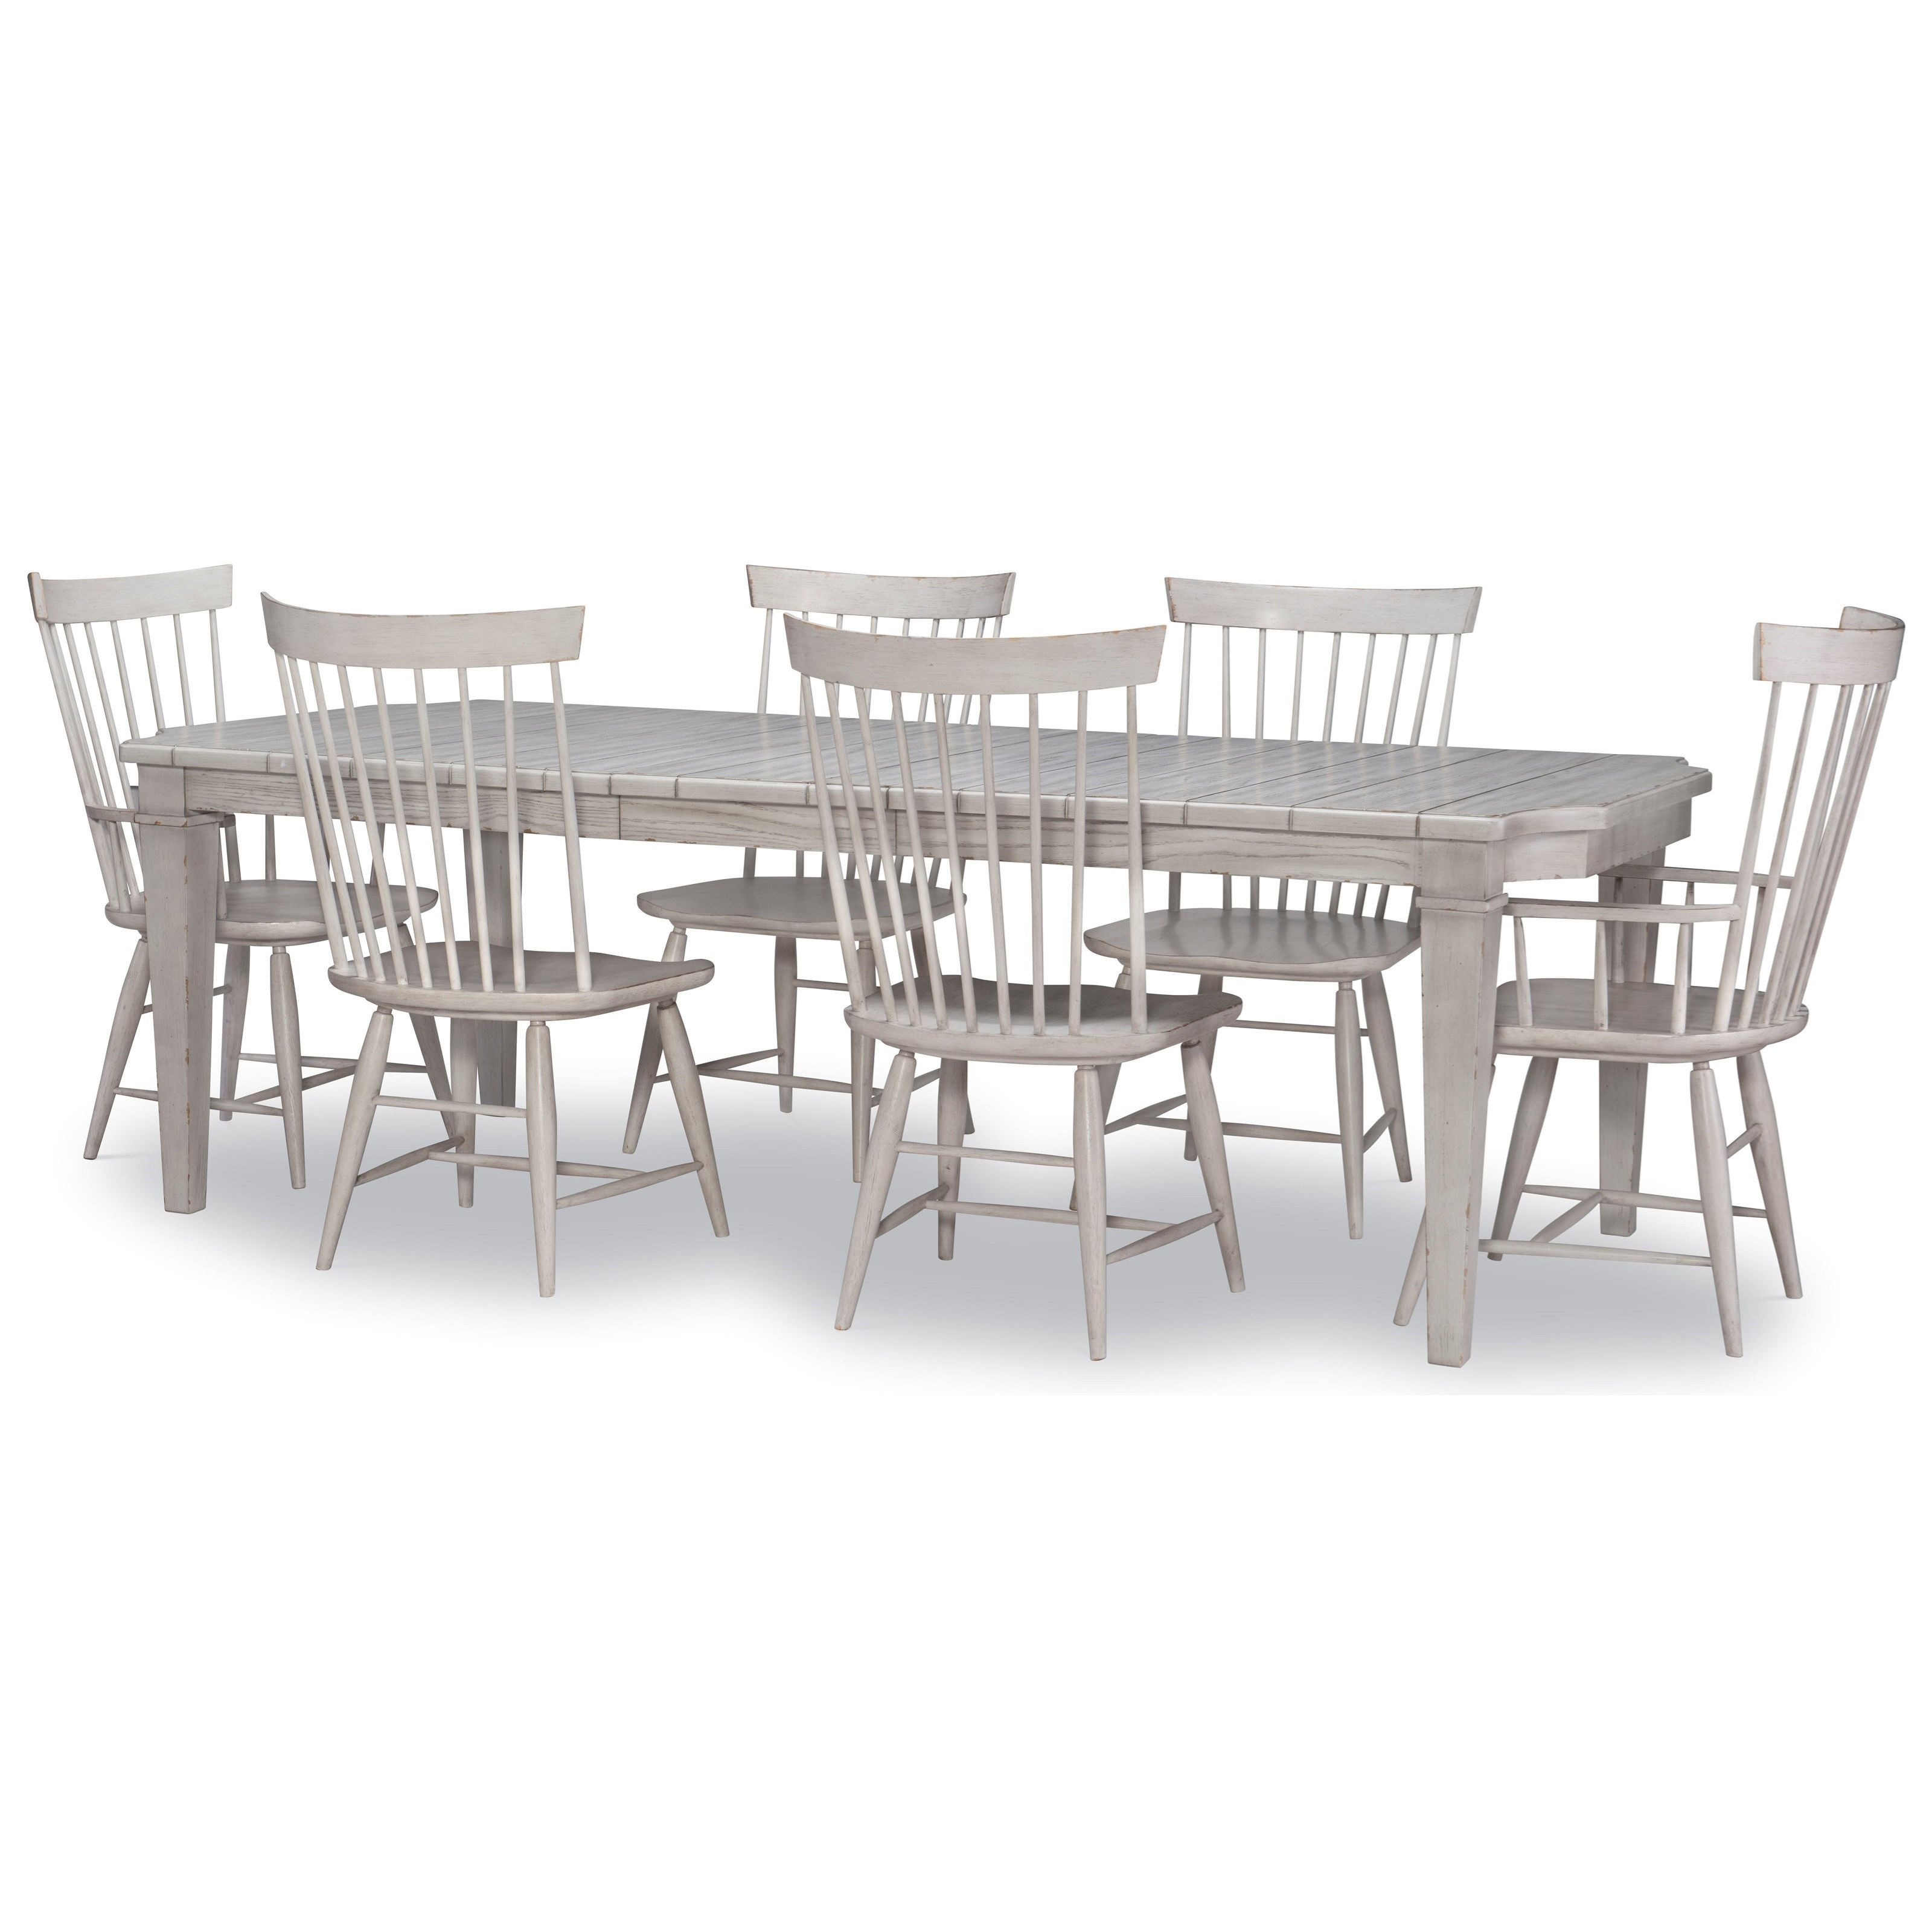 Belhaven 7-Piece Table and Chair Set by Legacy Classic at Stoney Creek Furniture